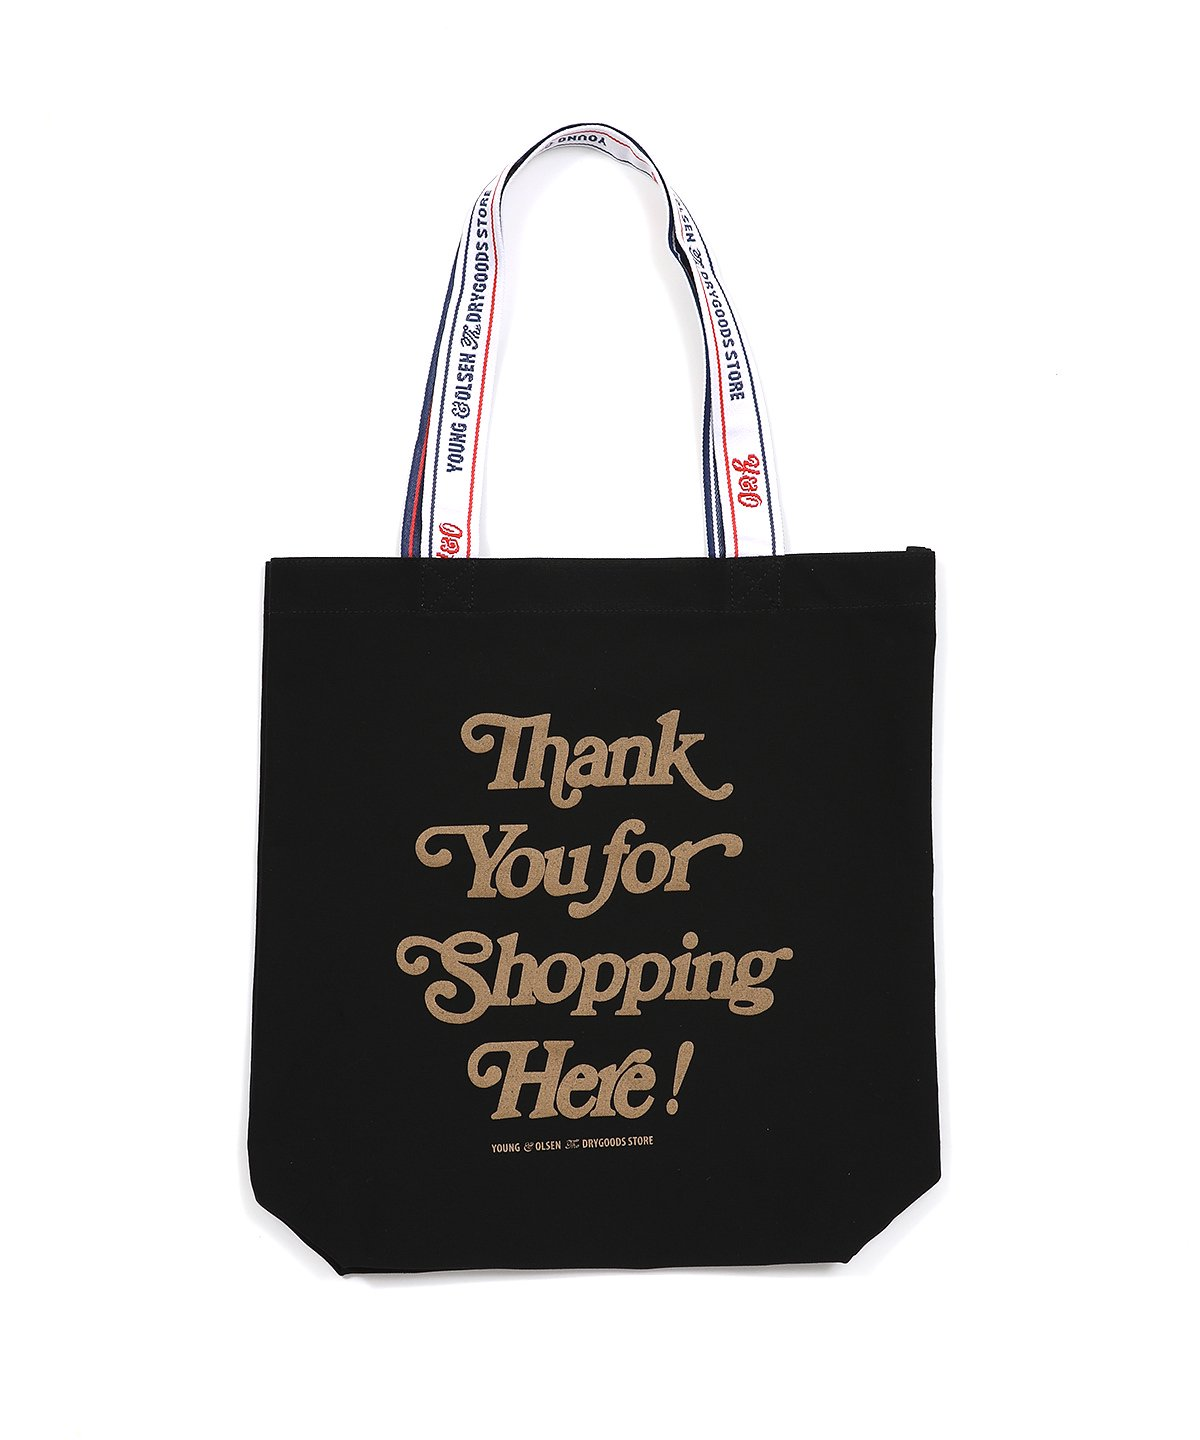 THANK YOU 4 SHOPPING TOTE